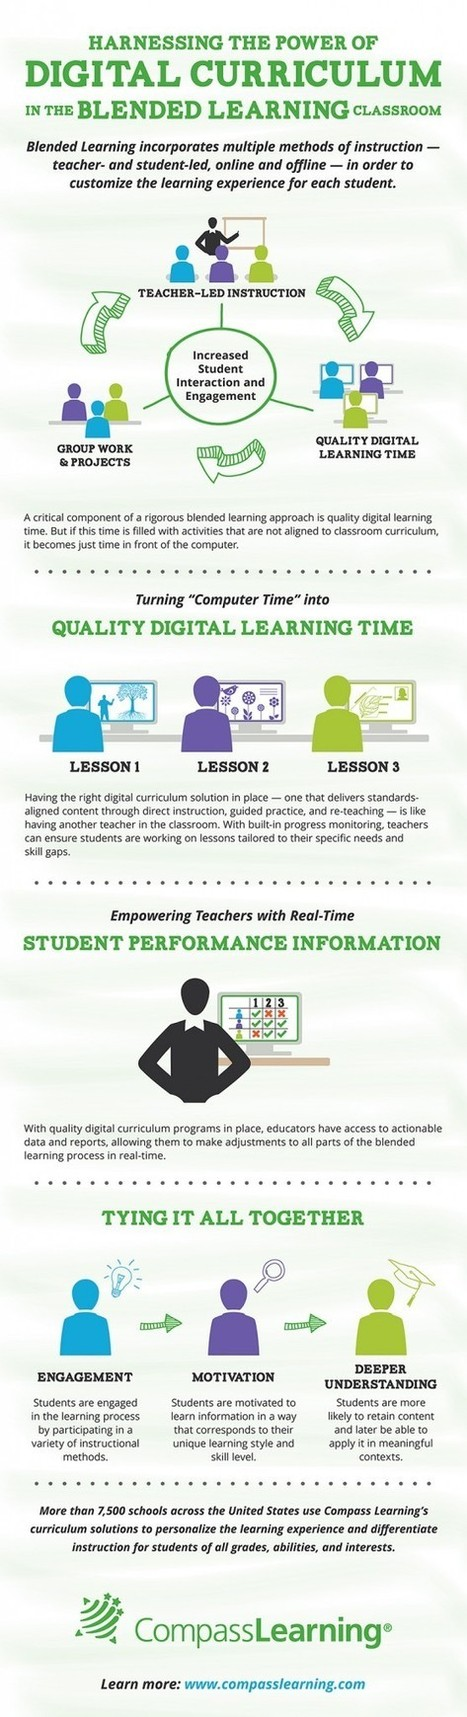 Harnessing The Power of Digital Curriculum In The Blended Learning Classroom Infographic | Educational technology , Erate, Broadband and Connectivity | Scoop.it